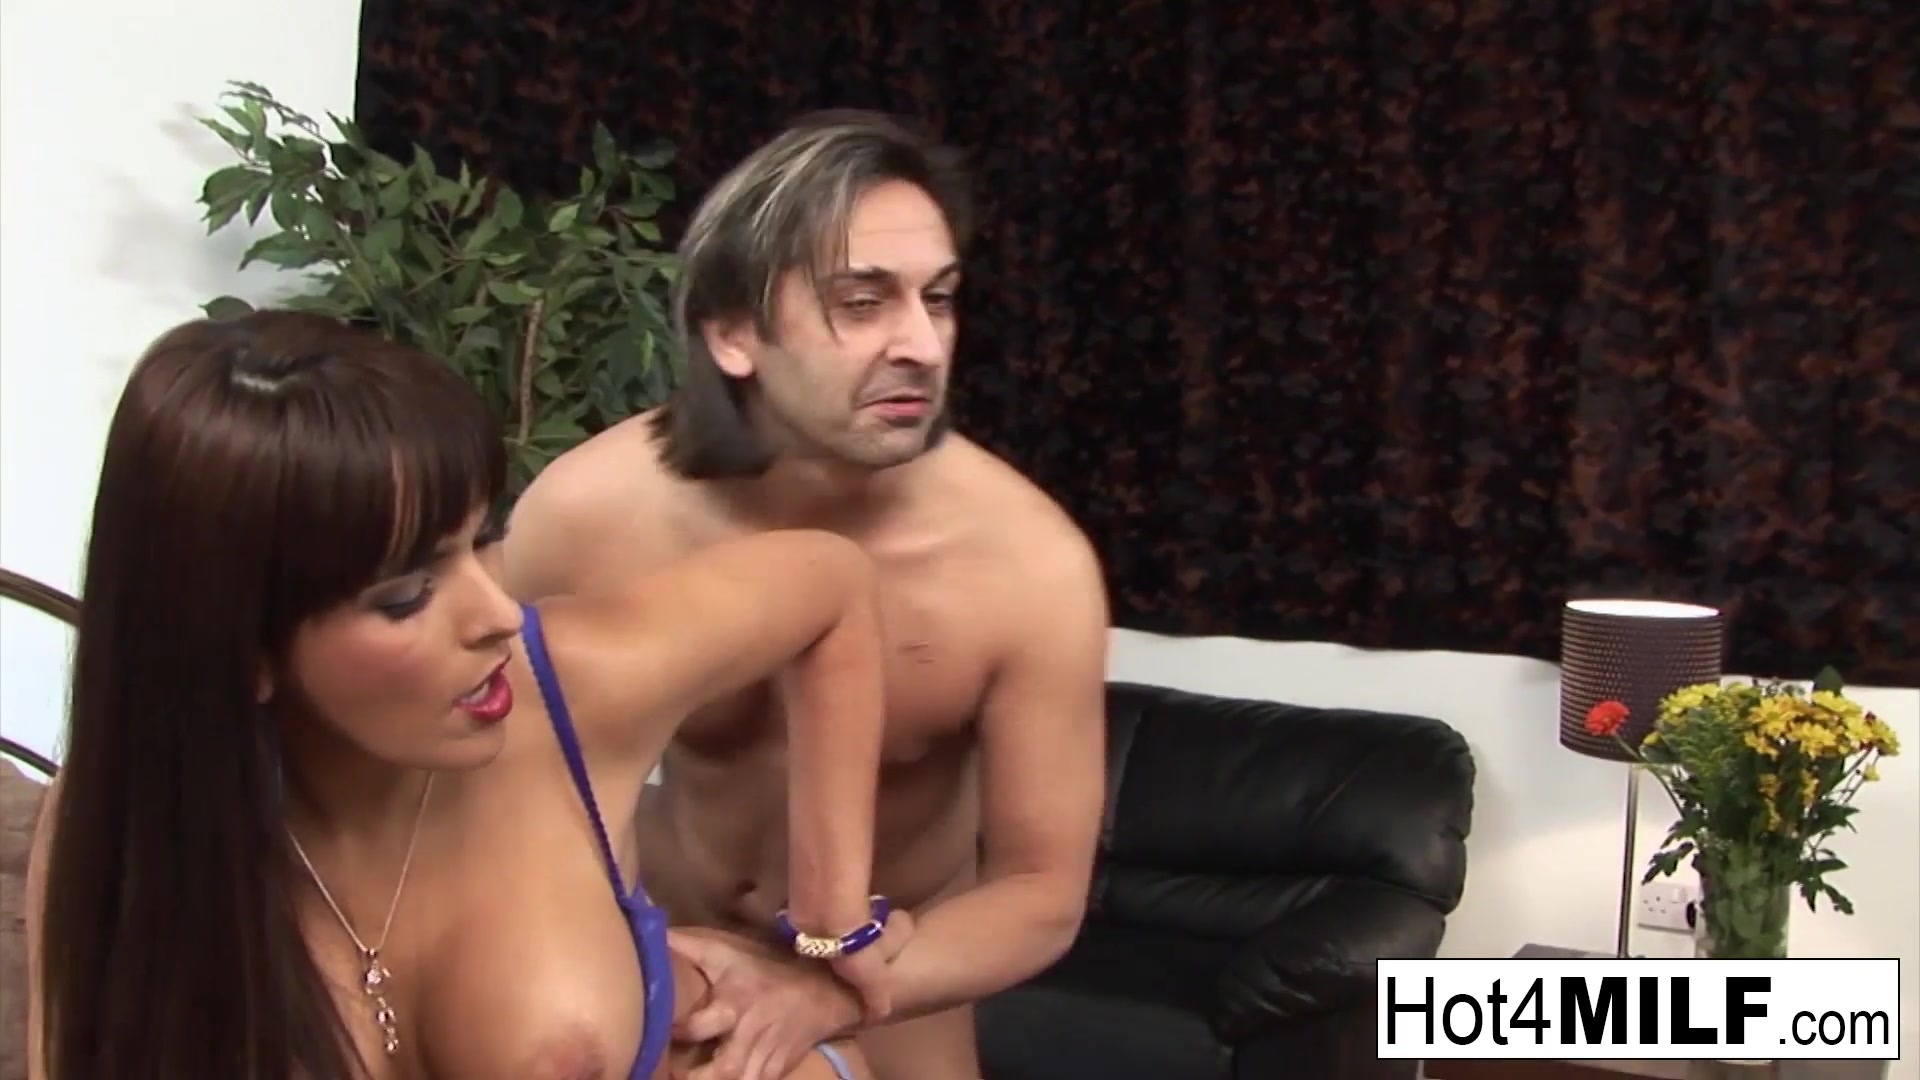 Gorgeous Brunette MILF Gets Fucked By Her Husband